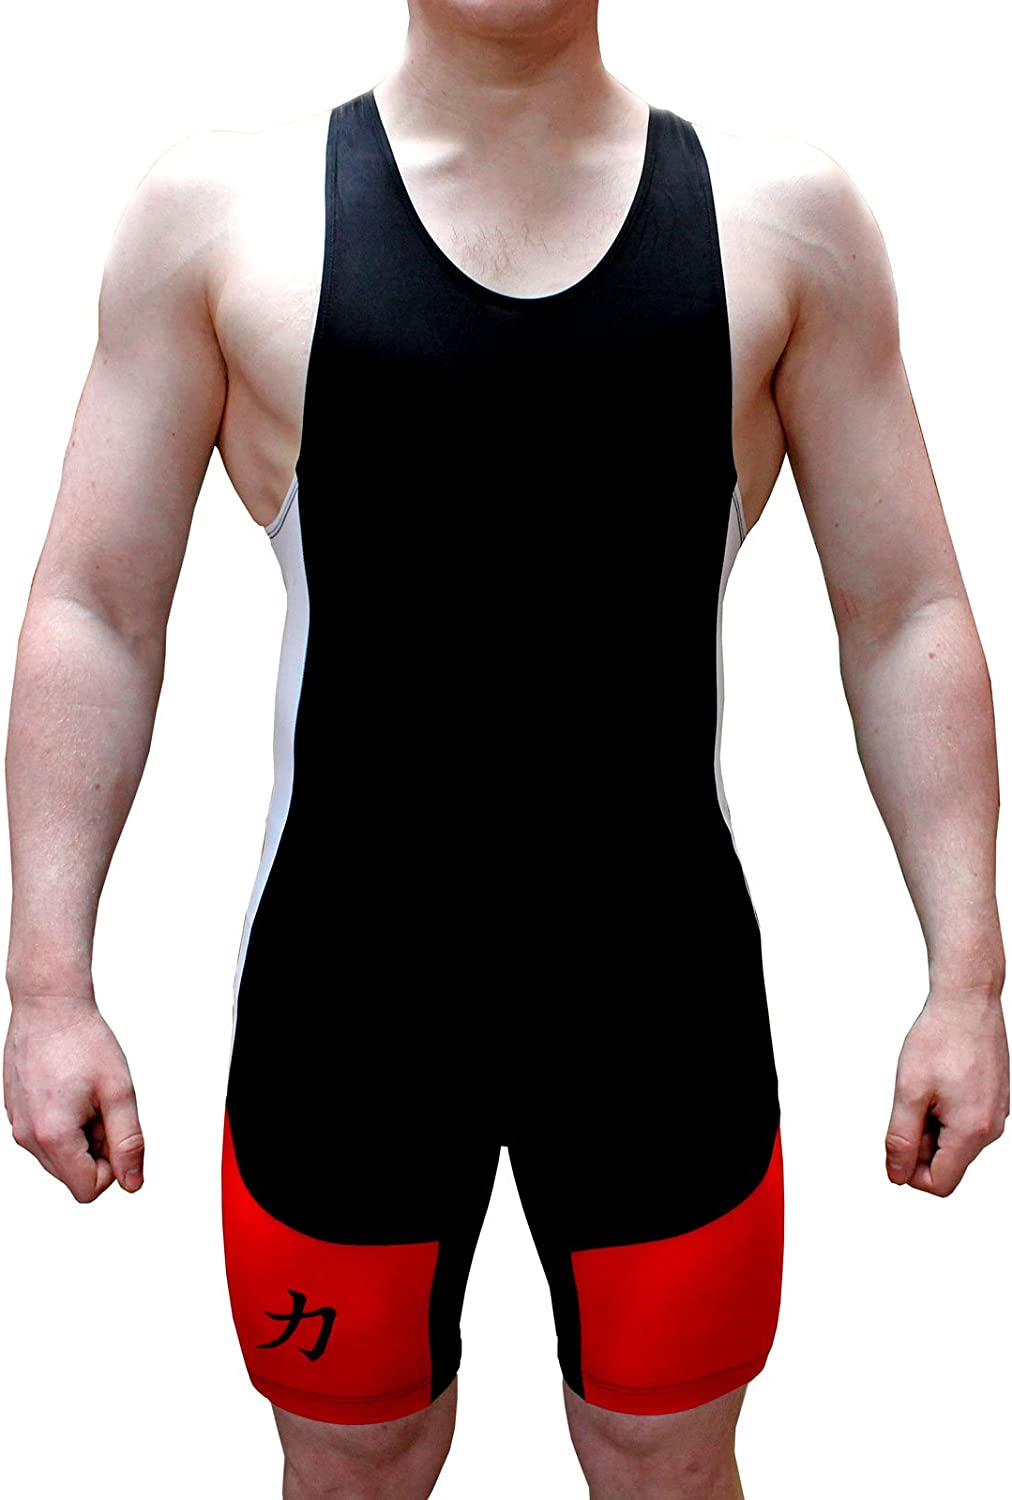 Singlet w//logo Red//White//Black IPF Approved Strength Shop Inferno